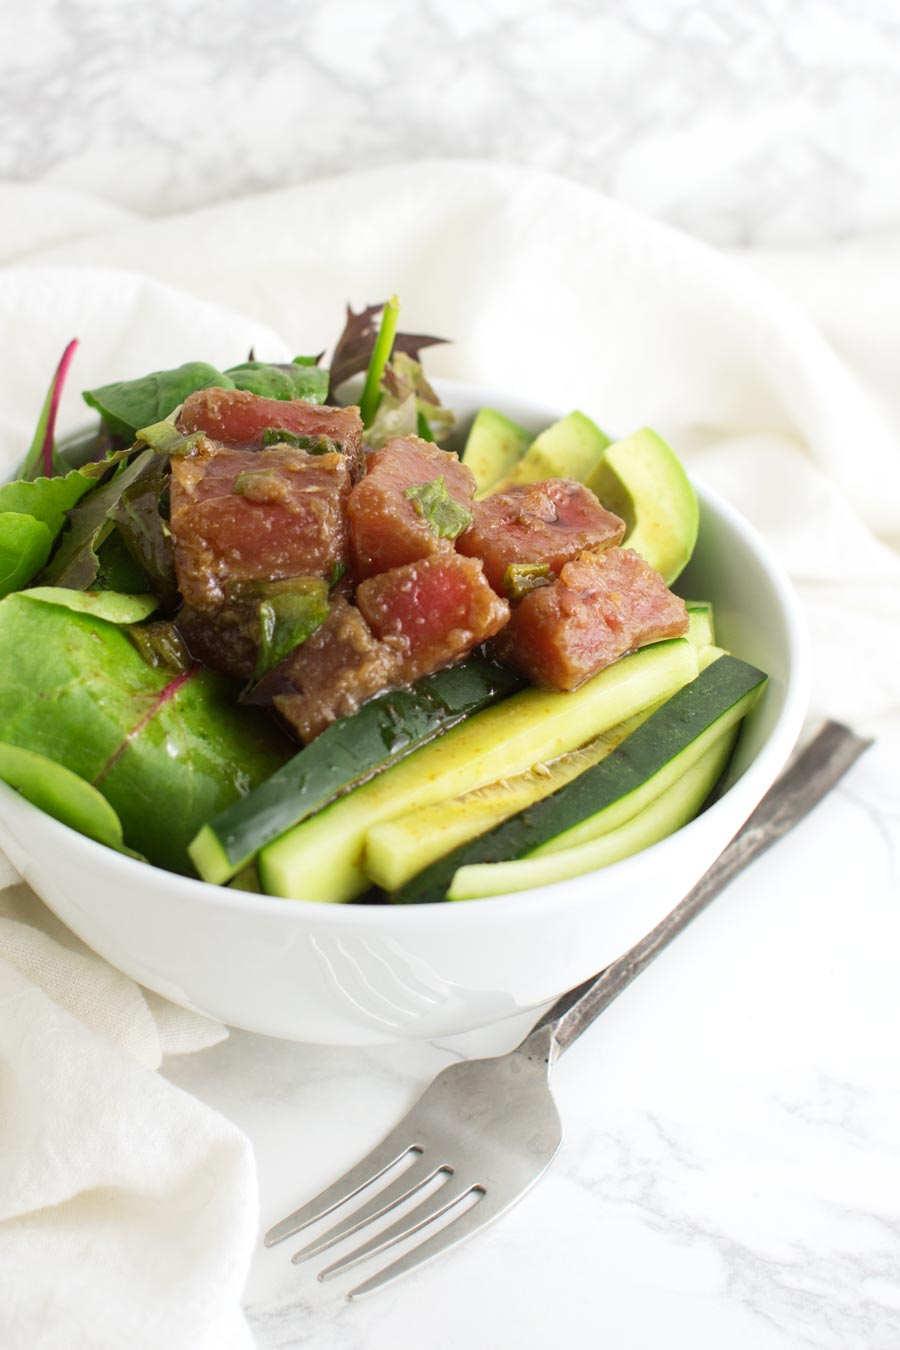 Tuna Poke Bowl recipe from acleanplate.com #paleo #aip #glutenfree